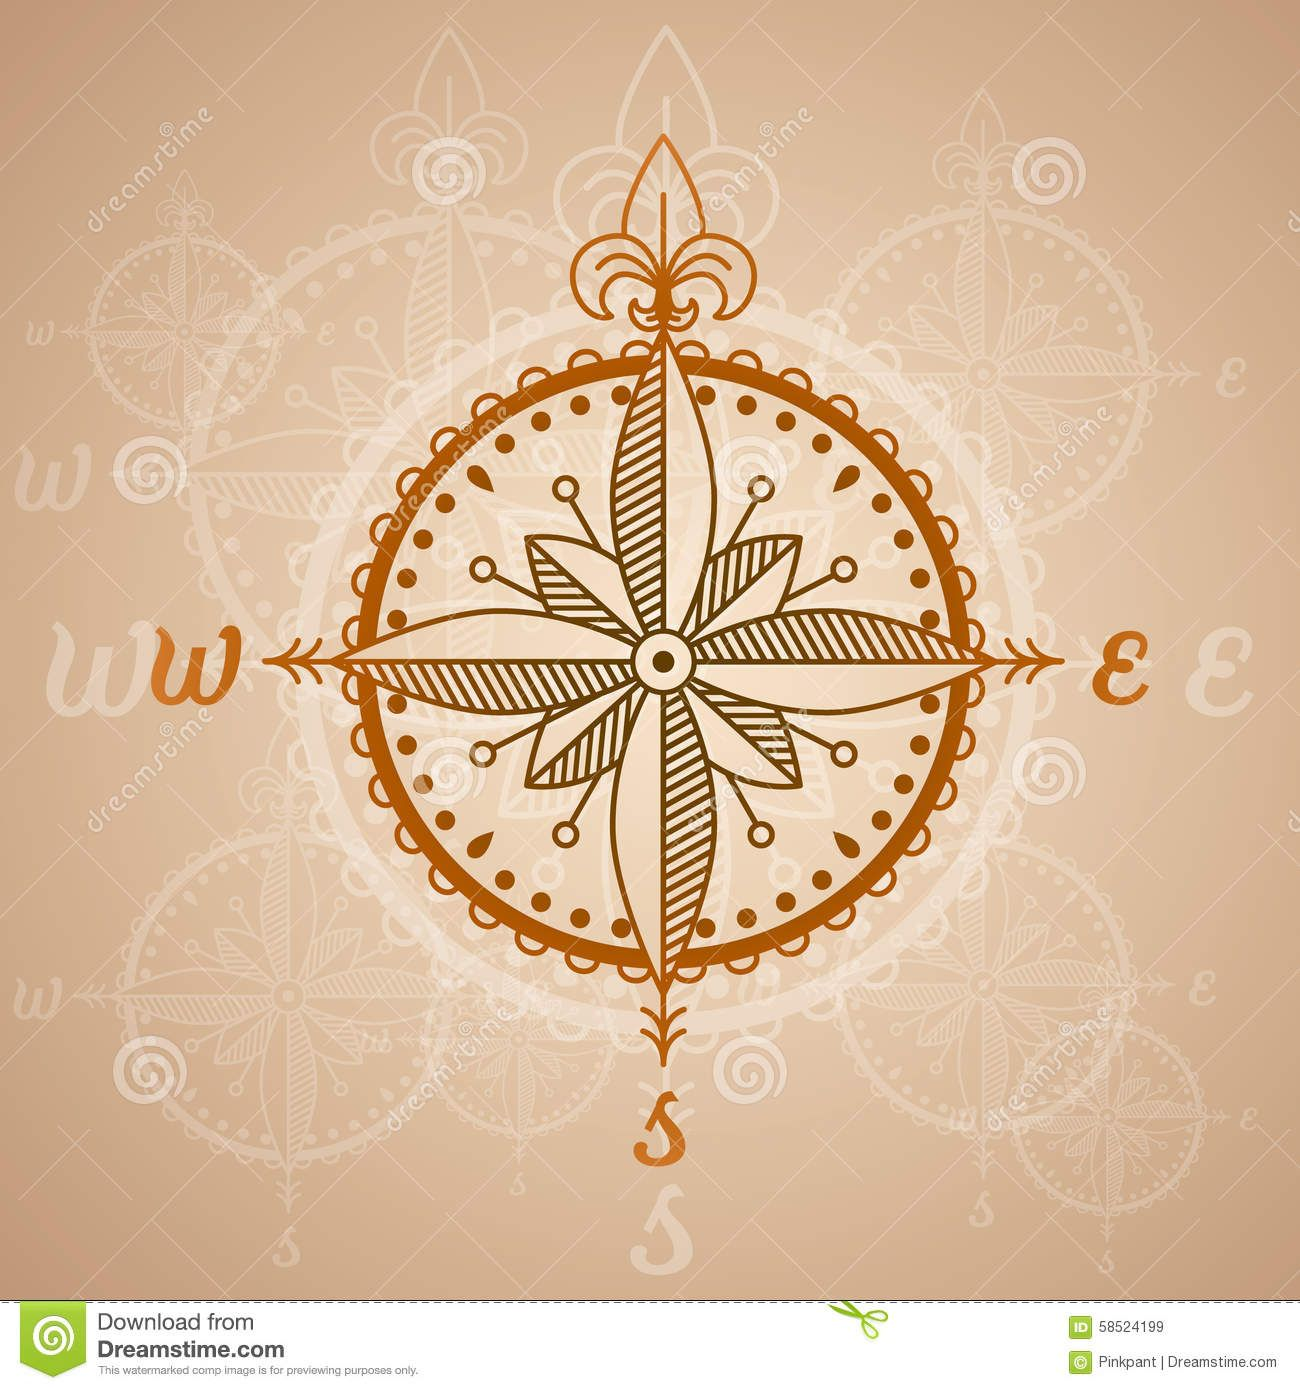 Vintage Compass Roses, Icon And Design Element. Vector Nautical Label. - Download From Over 43 Million High Quality Stock Photos, Images, Vectors. Sign up for FREE today. Image: 58524199